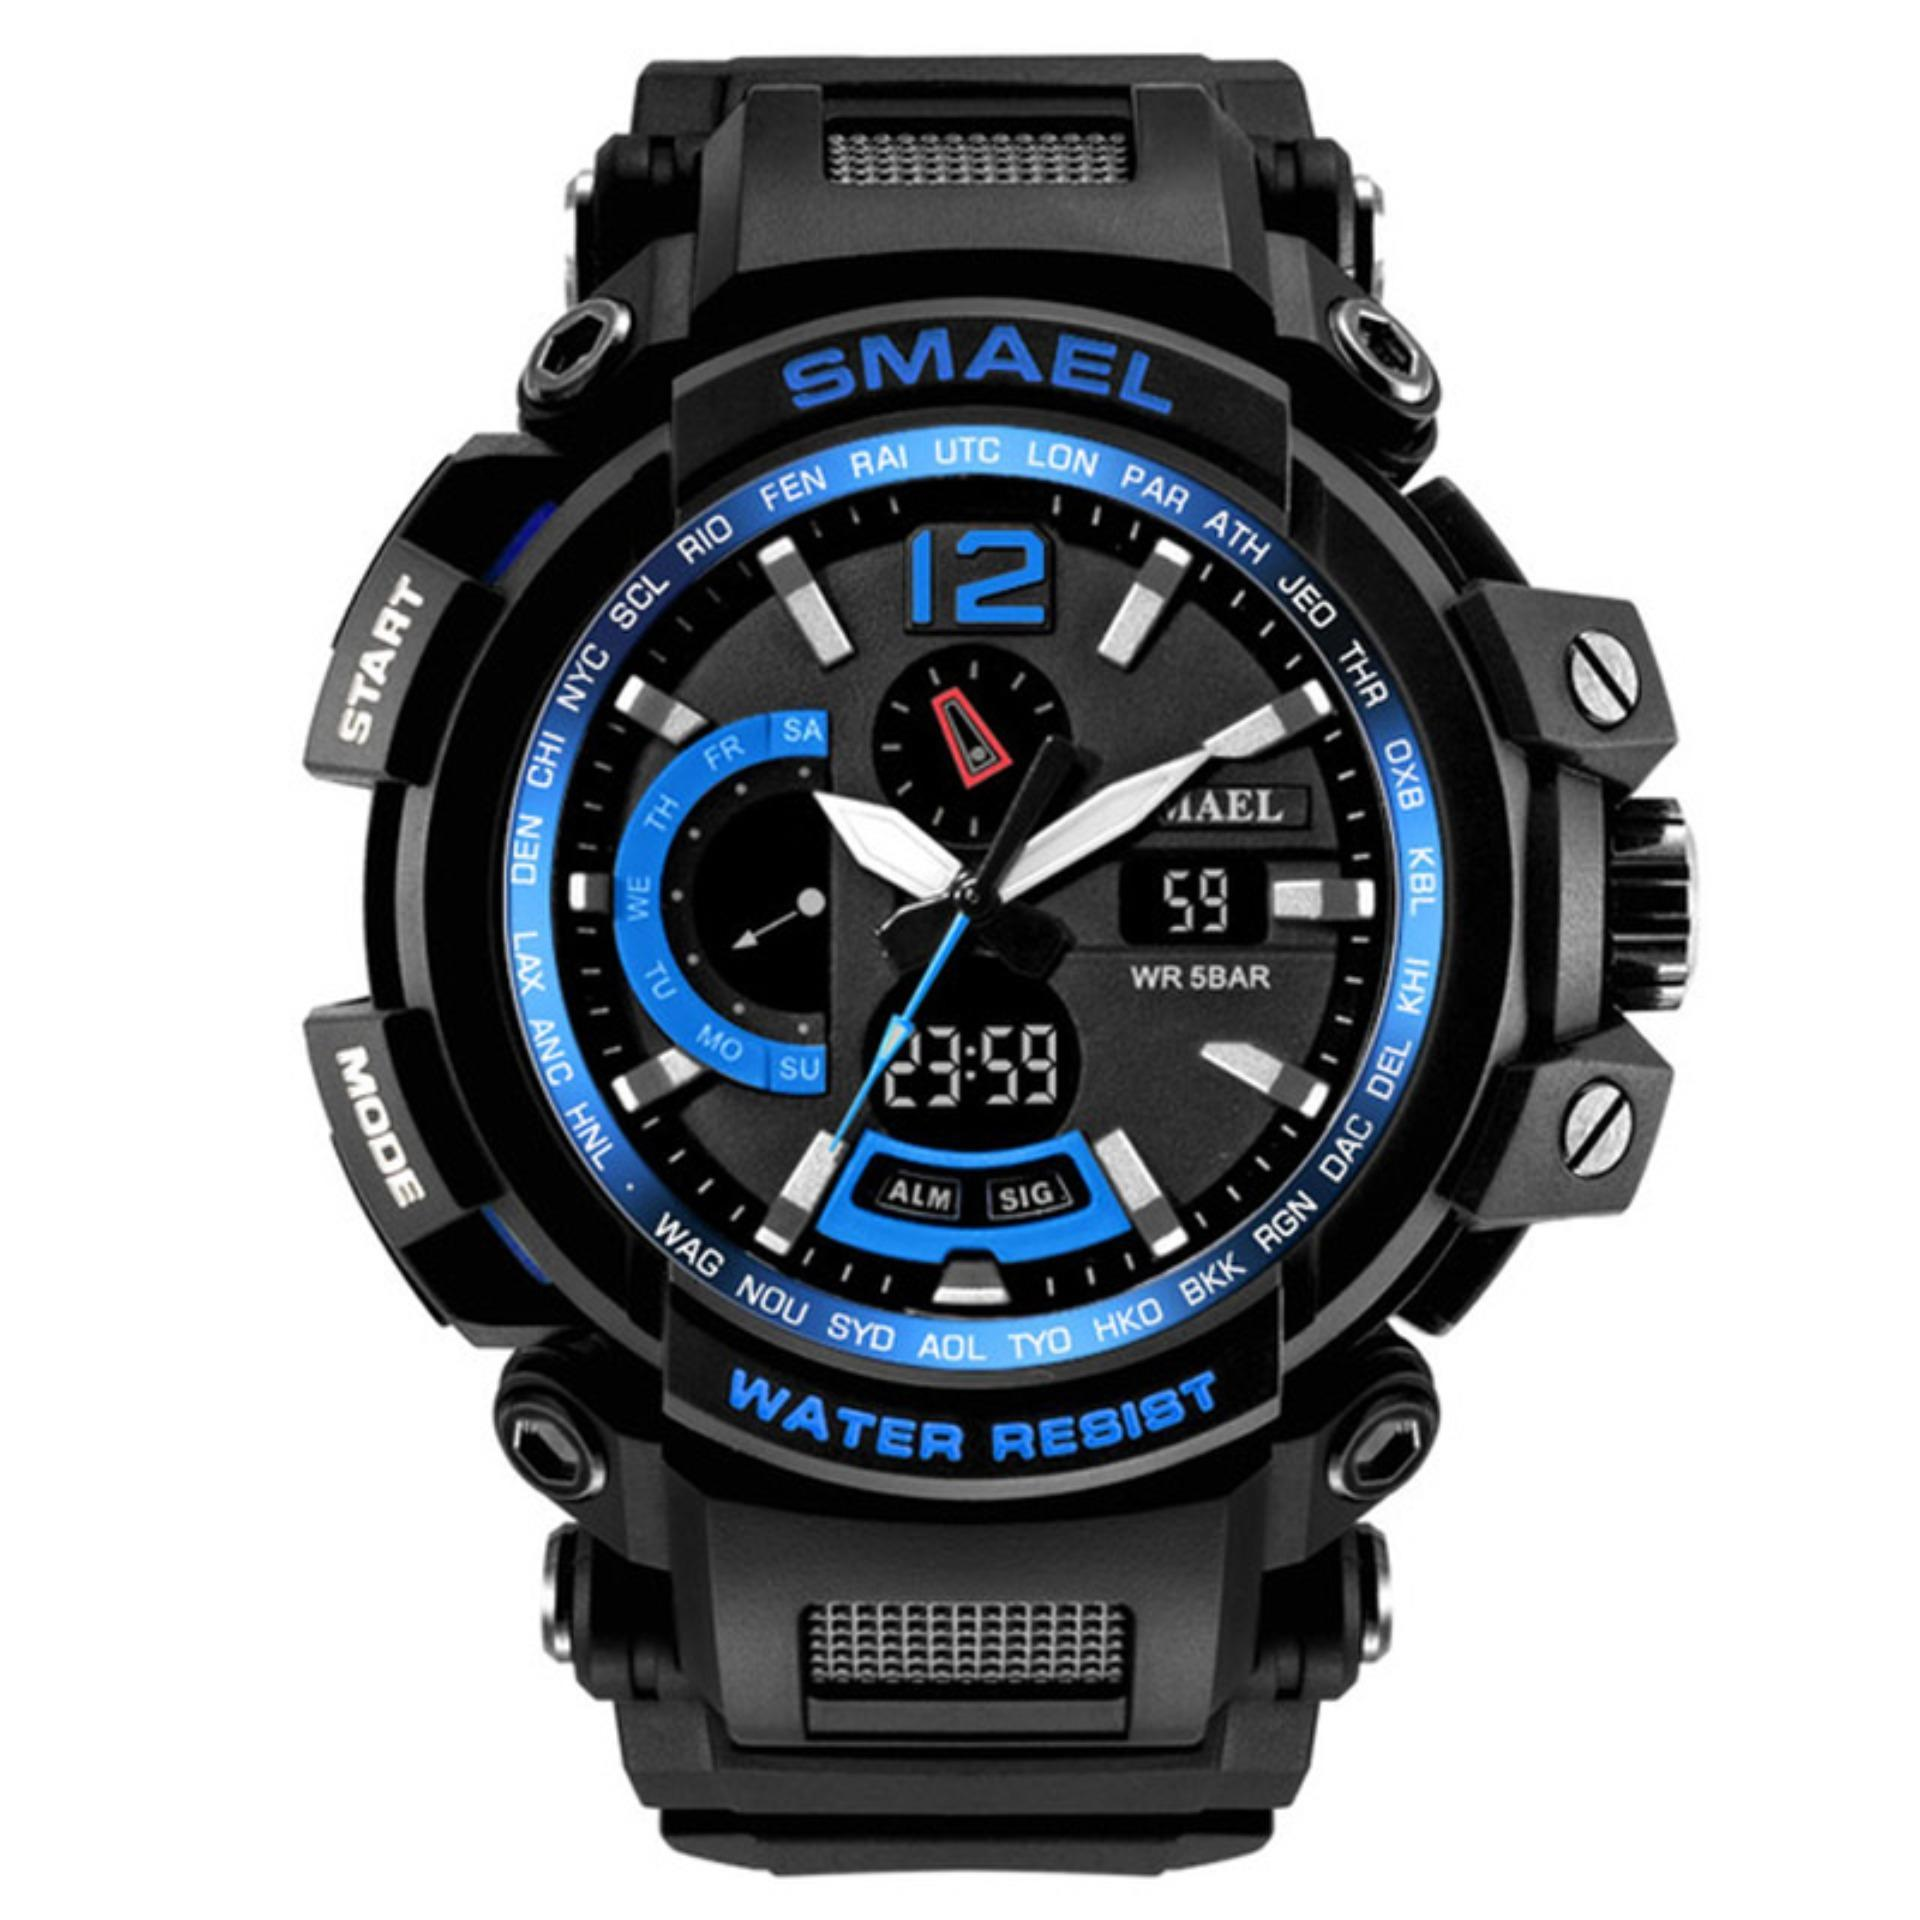 SMAEL Men Top Brand Electronic LED Digital Wrist Watches For Male Sport Watch Men Military Clock Relogio Masculino Blue